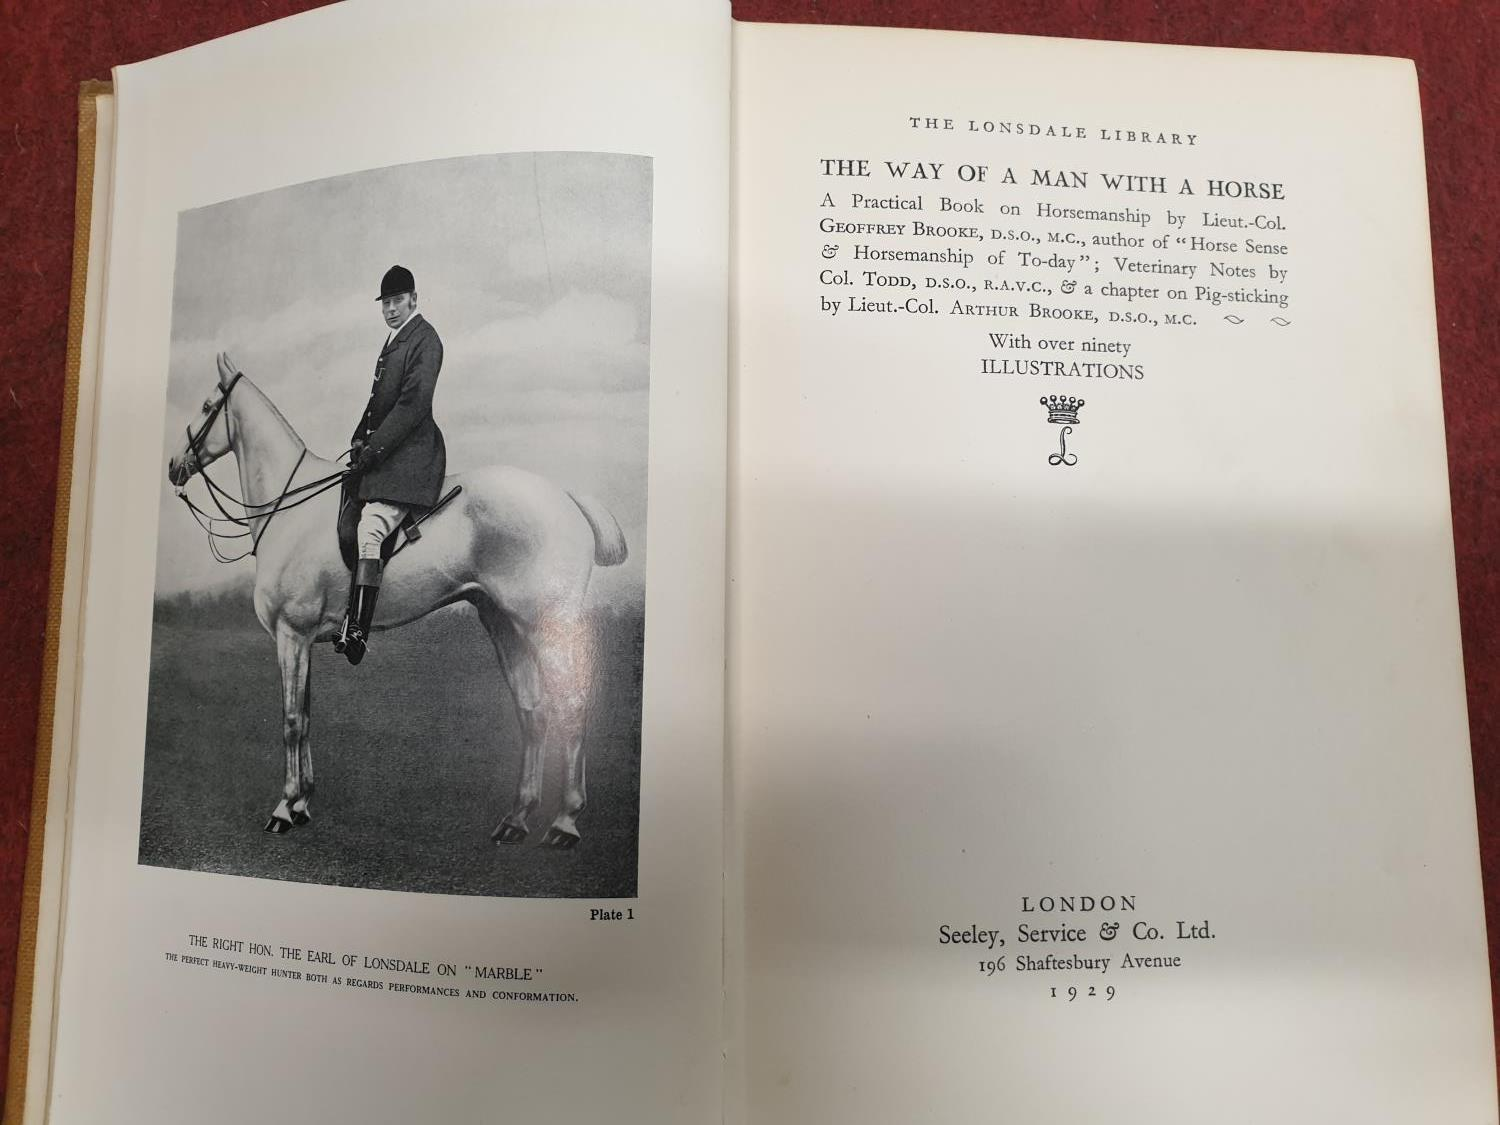 Lot 69C - Six volumes of The Lonsdale Library, The way of a man with a horse x 2, Flat Racing and Trout